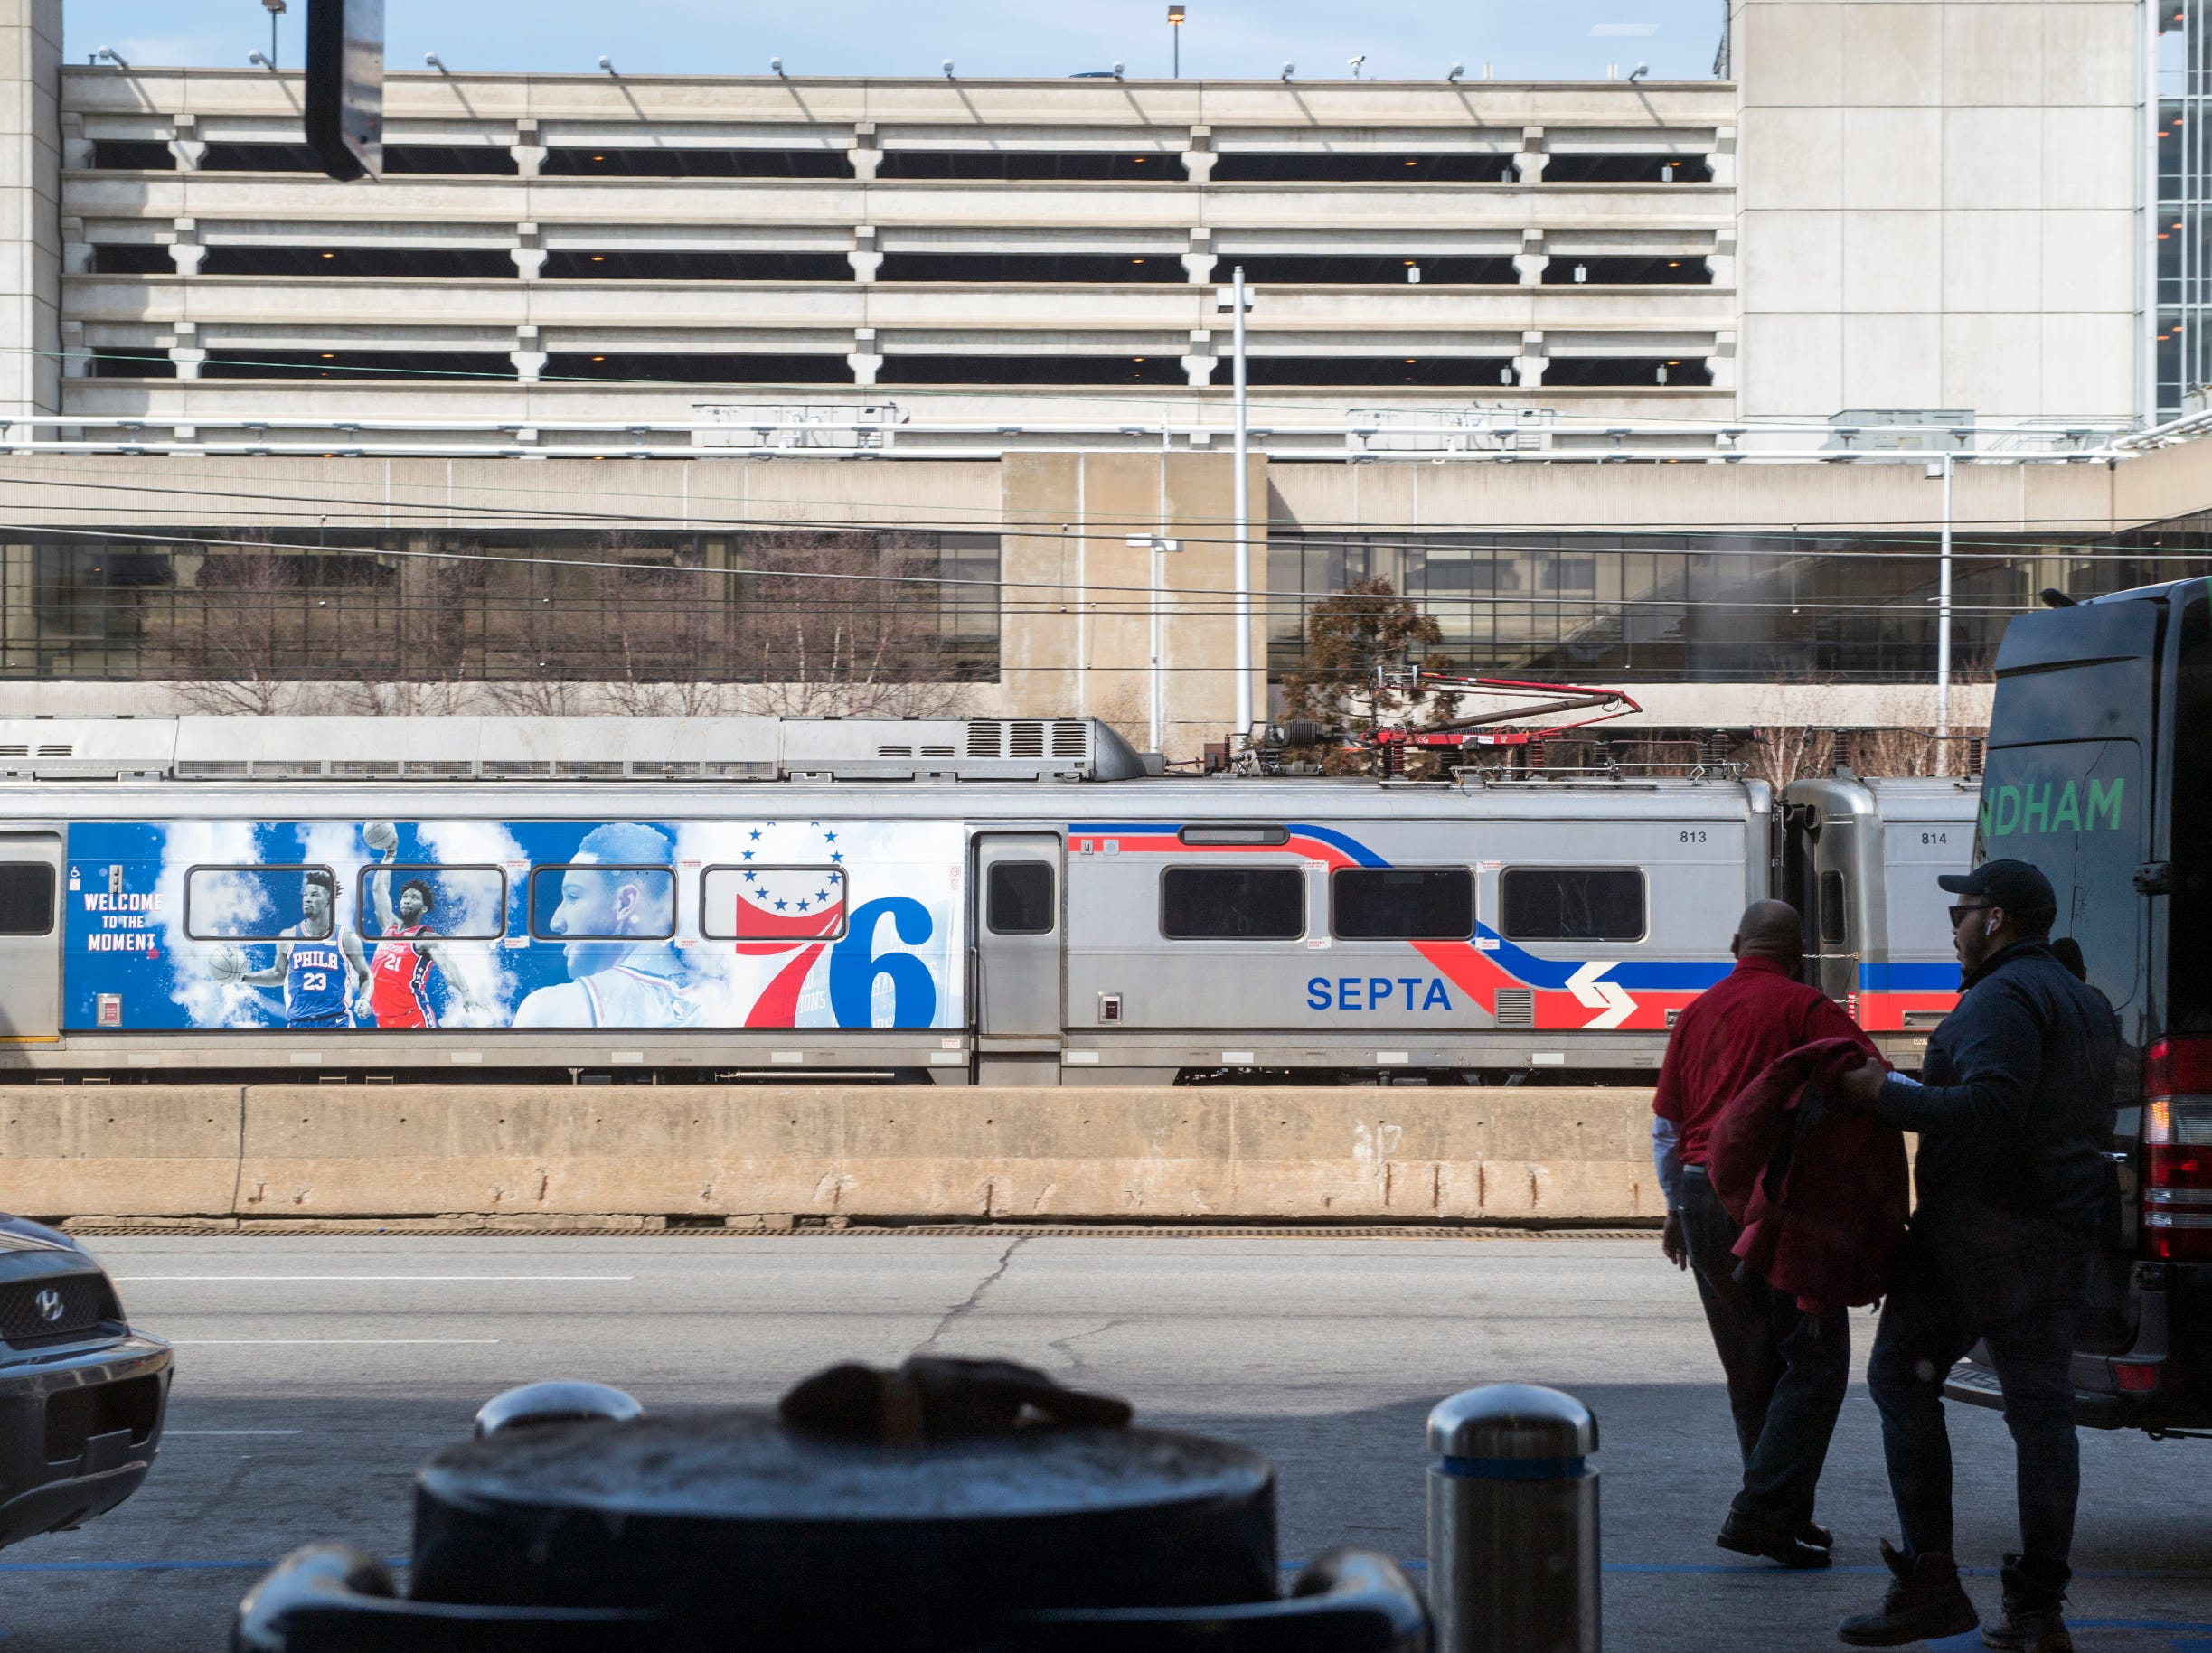 A SEPTA train rolls through Thursday, March 14, 2019 at Philadelphia International Airport in Philadelphia, Pa.